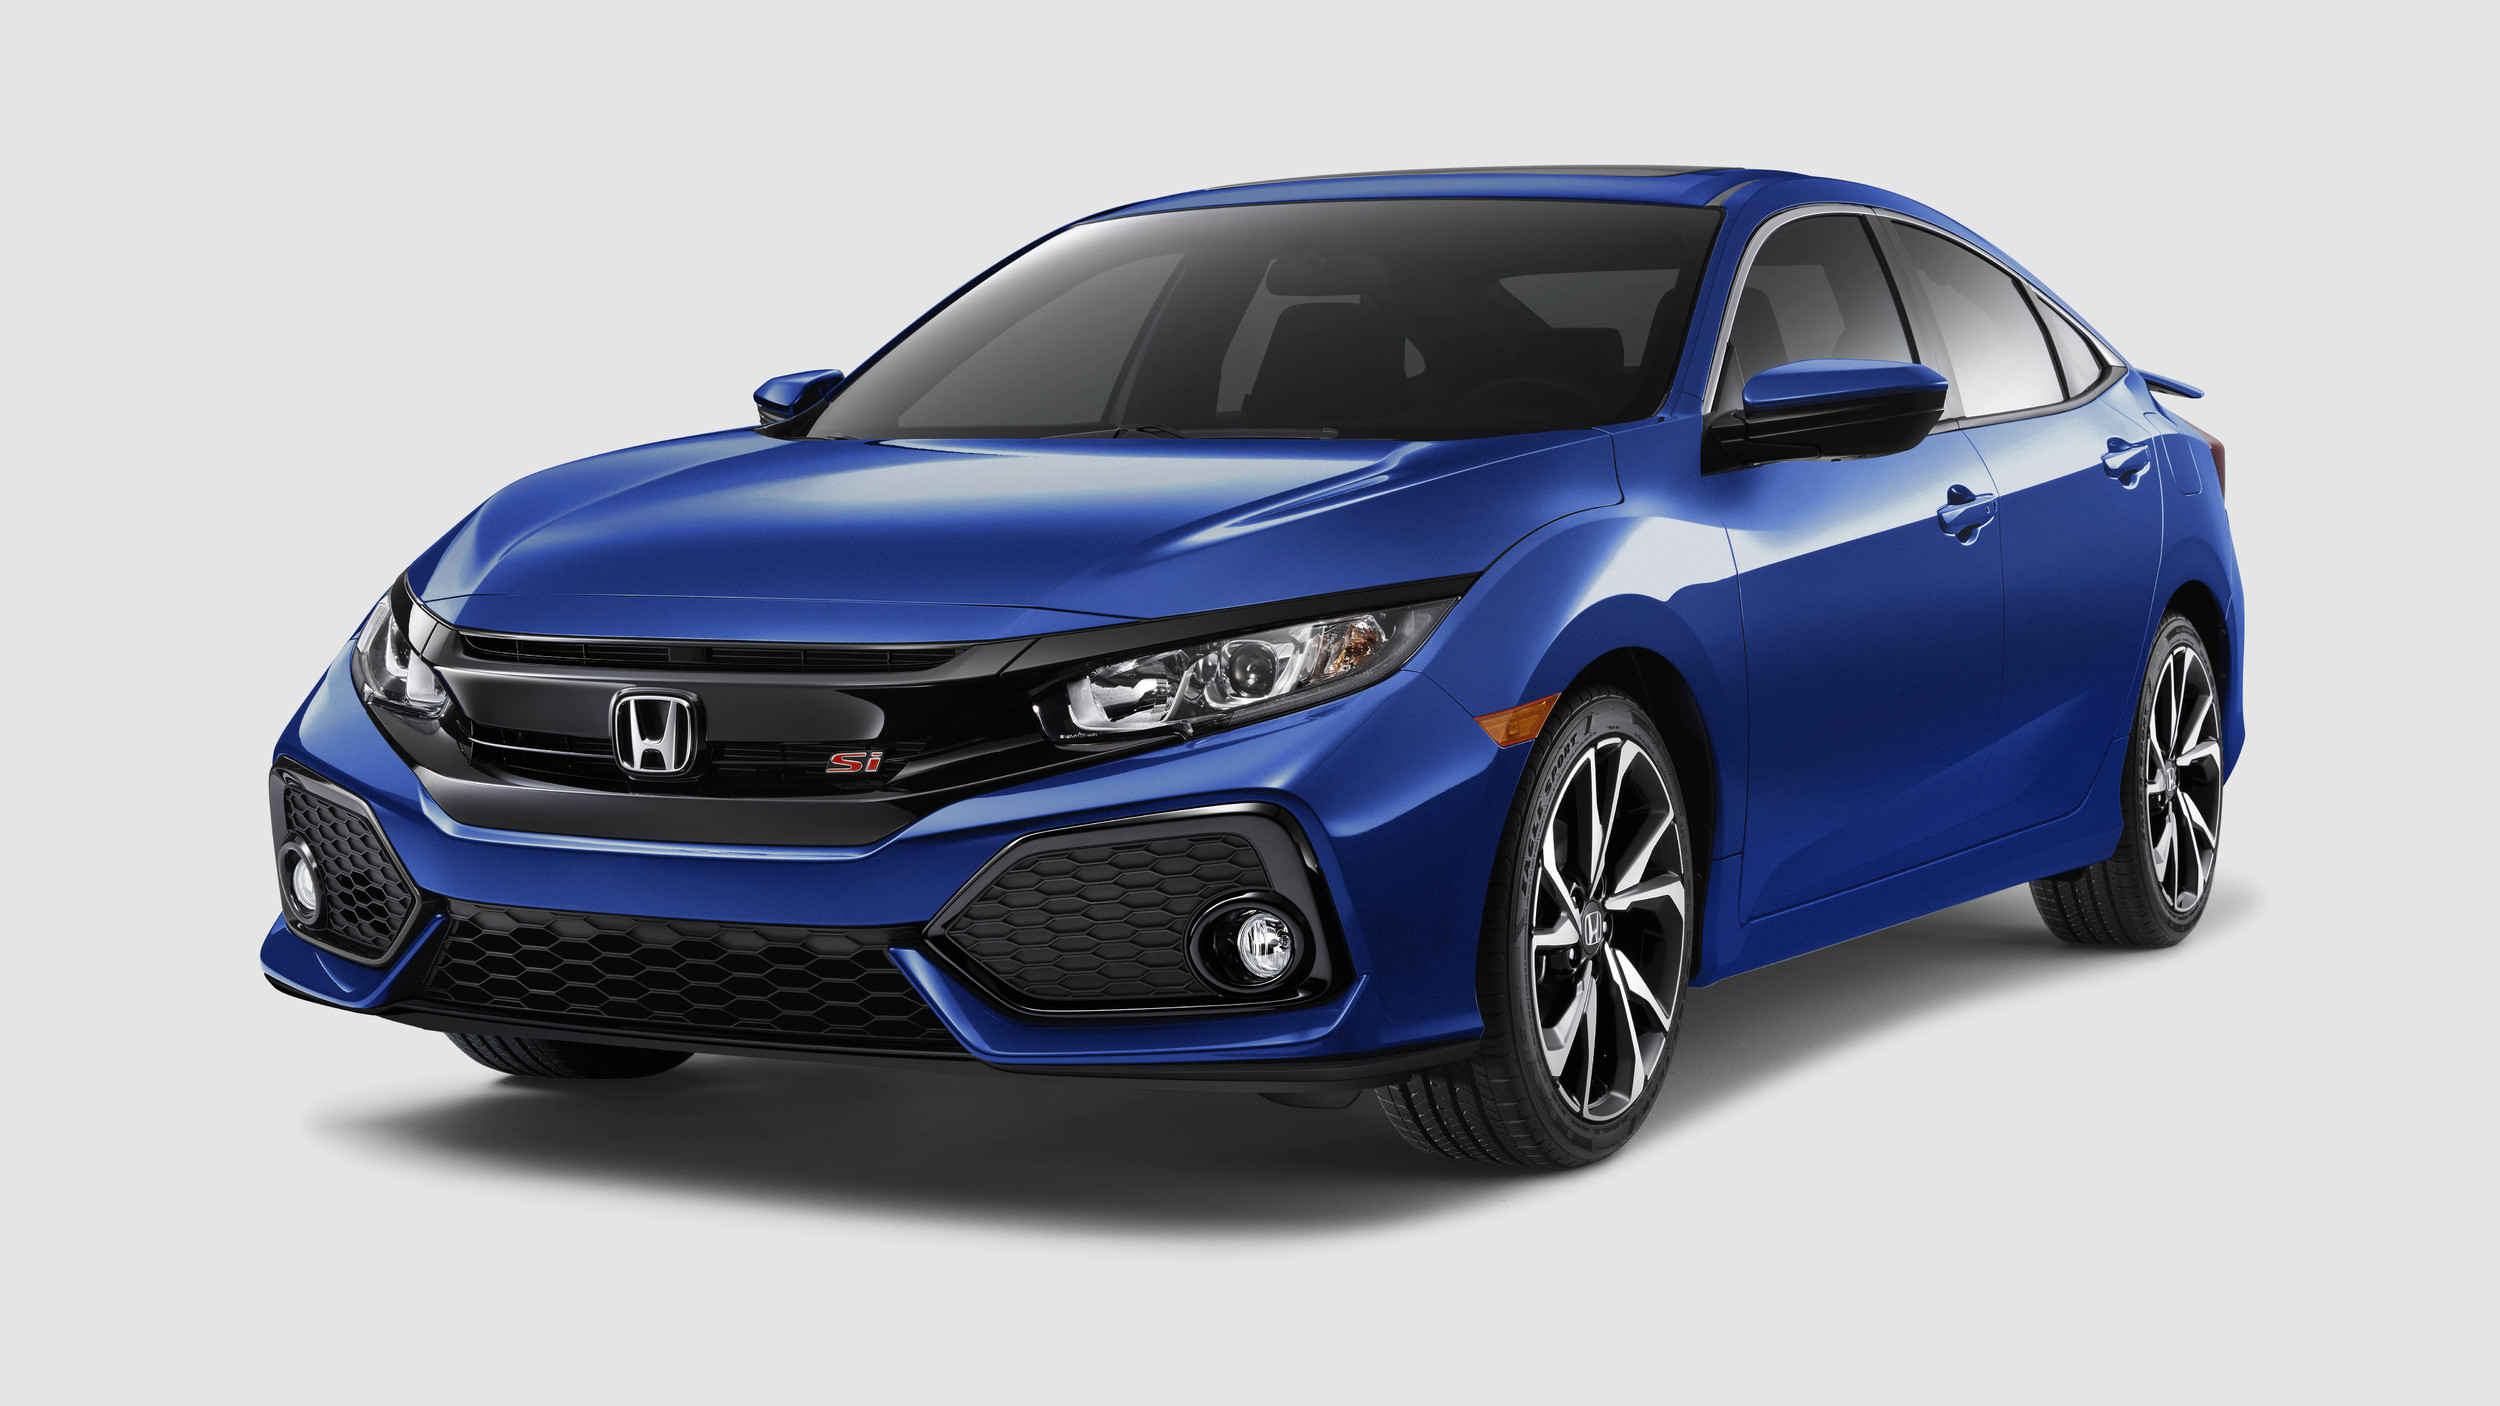 Honda Civic Si 2018 (4)